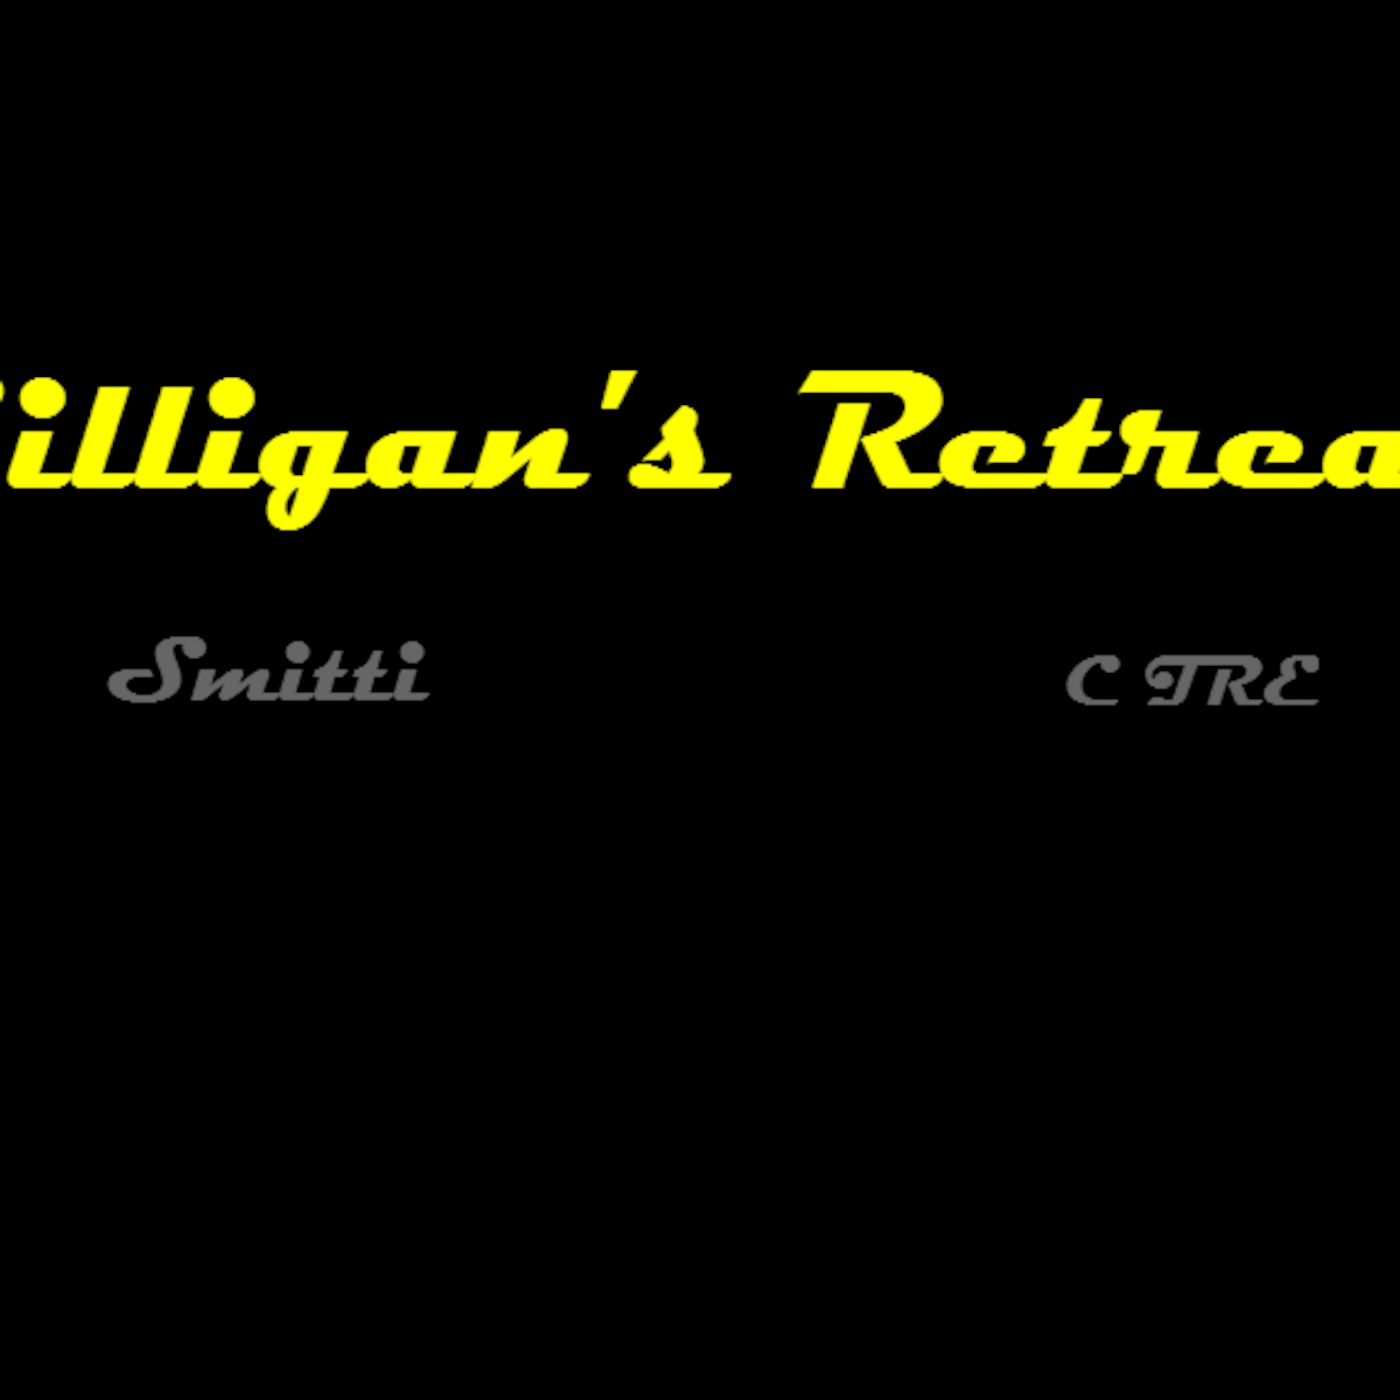 Gilligan's Retreat' Podcast